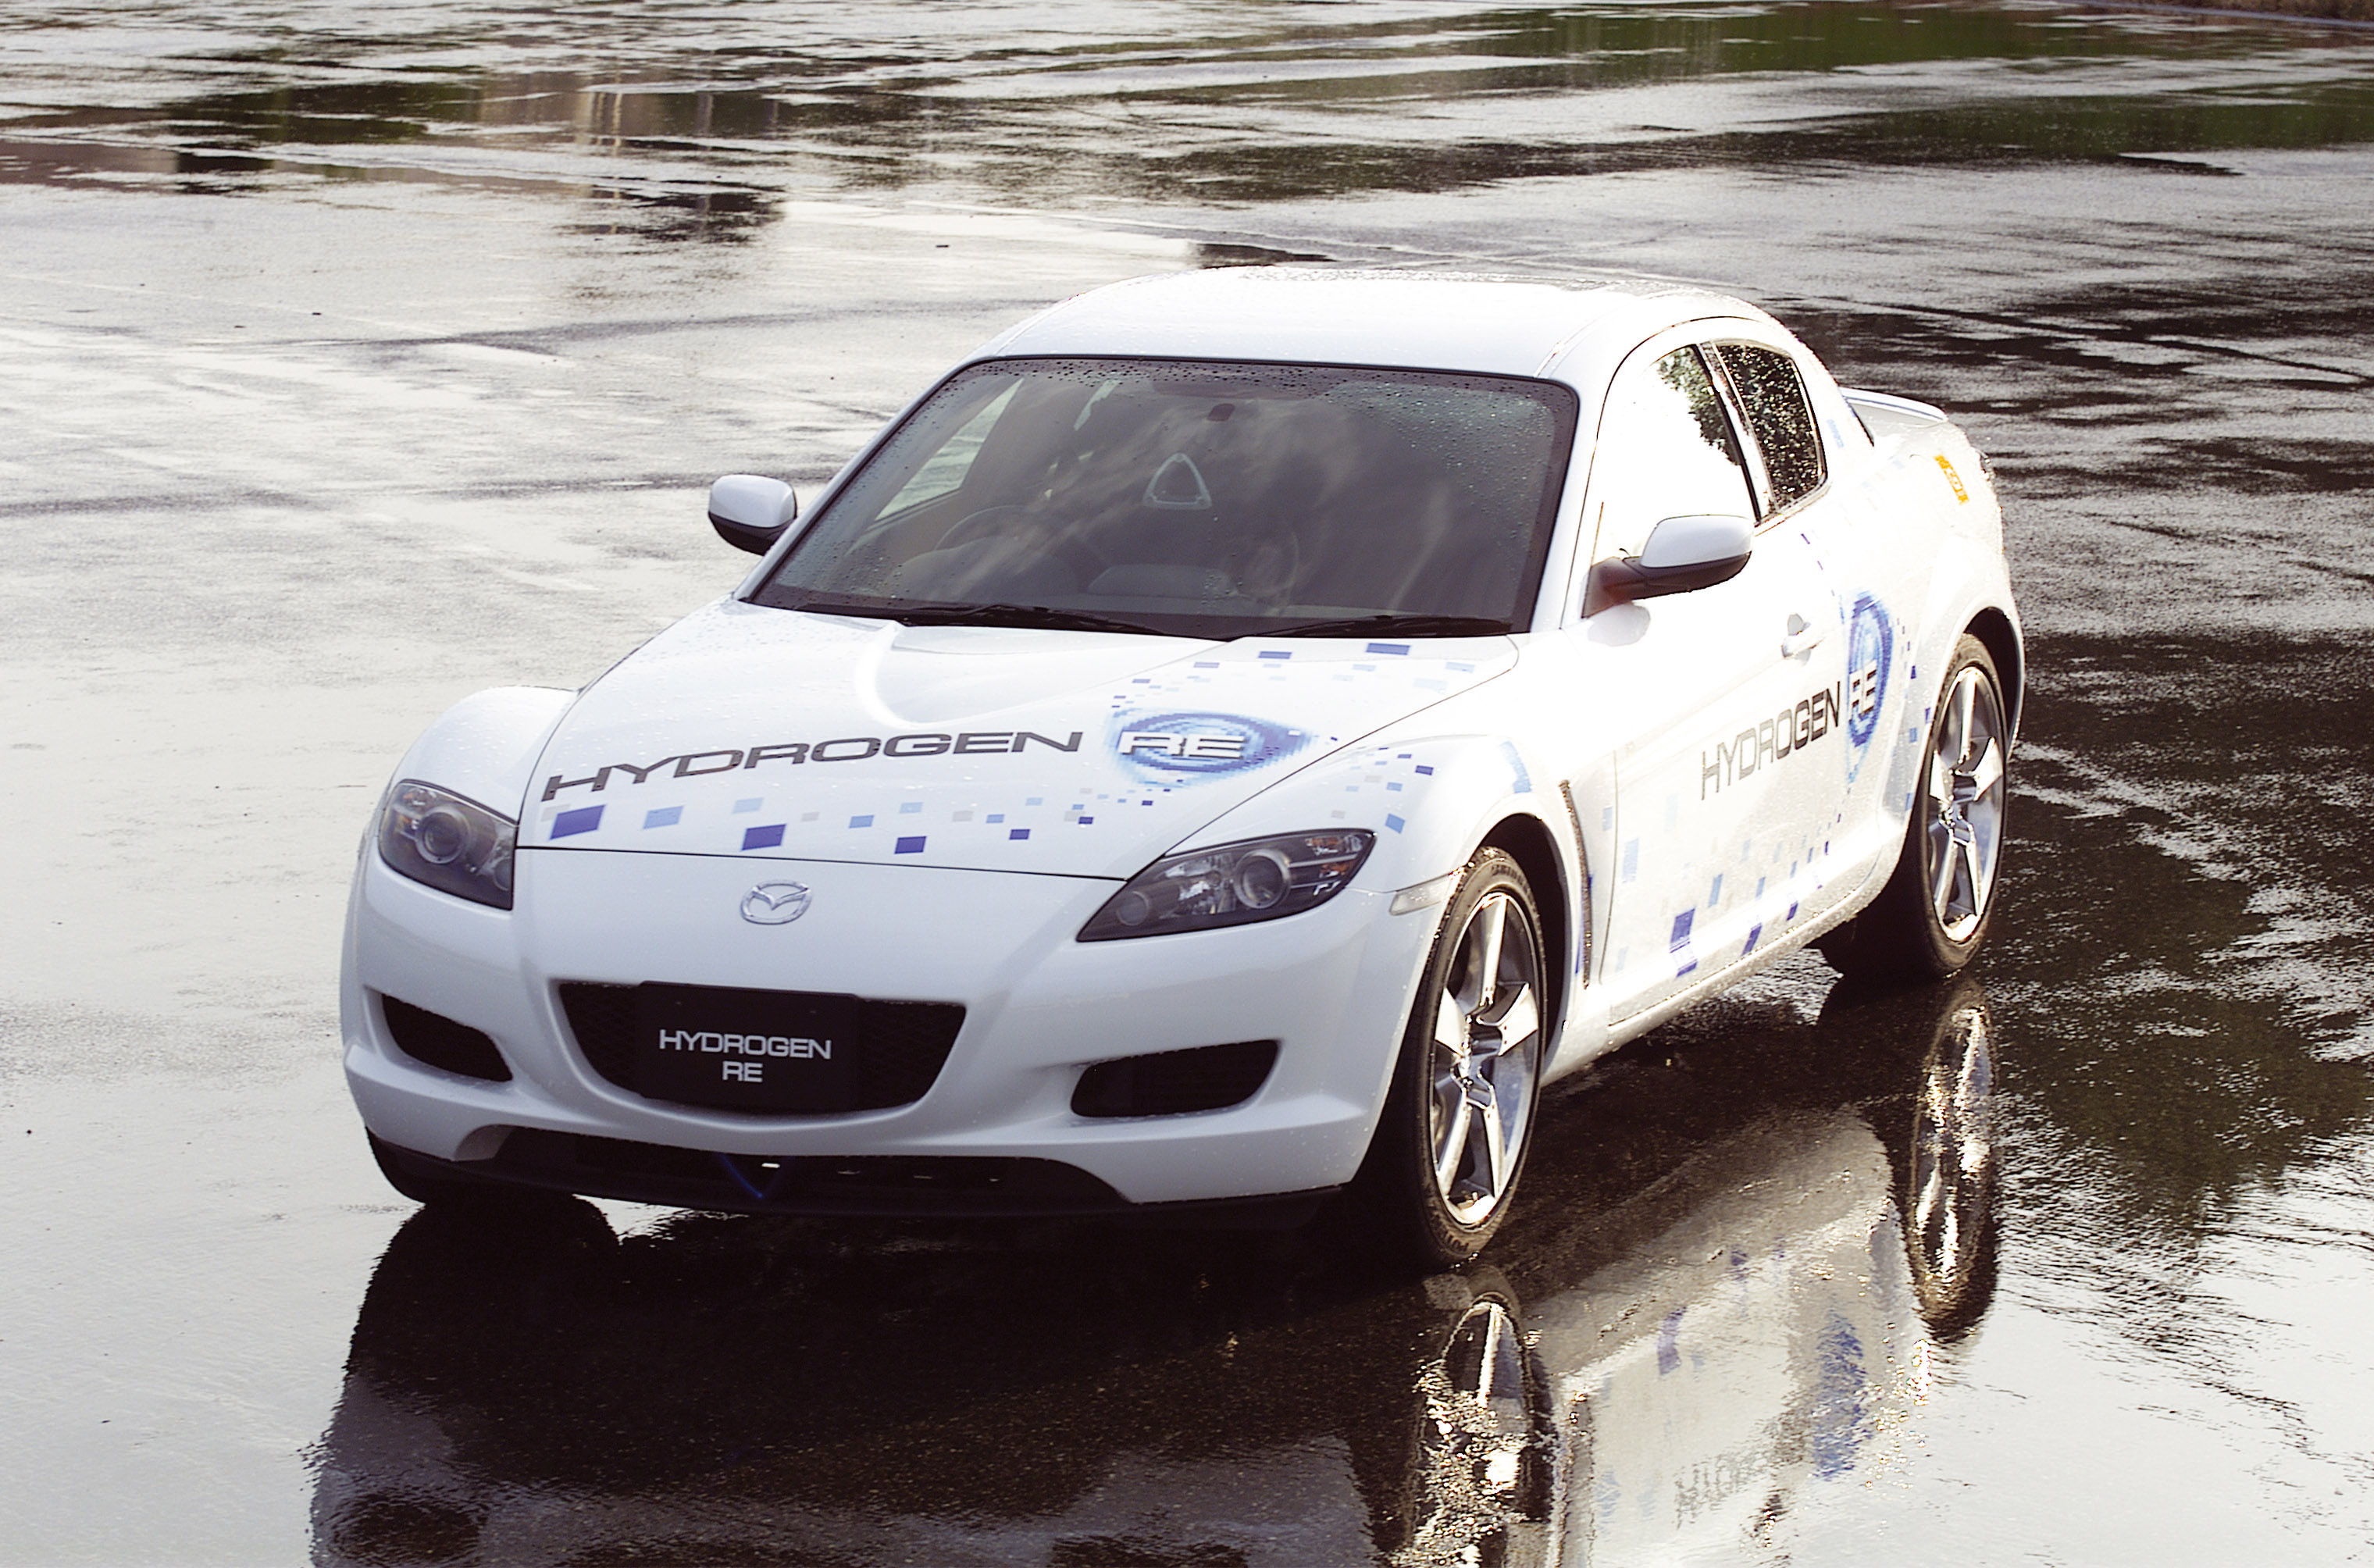 https://www.carsinvasion.com/gallery/2003-mazda-rx-8-hydrogen-concept/2003-mazda-rx-8-hydrogen-concept-05.jpg